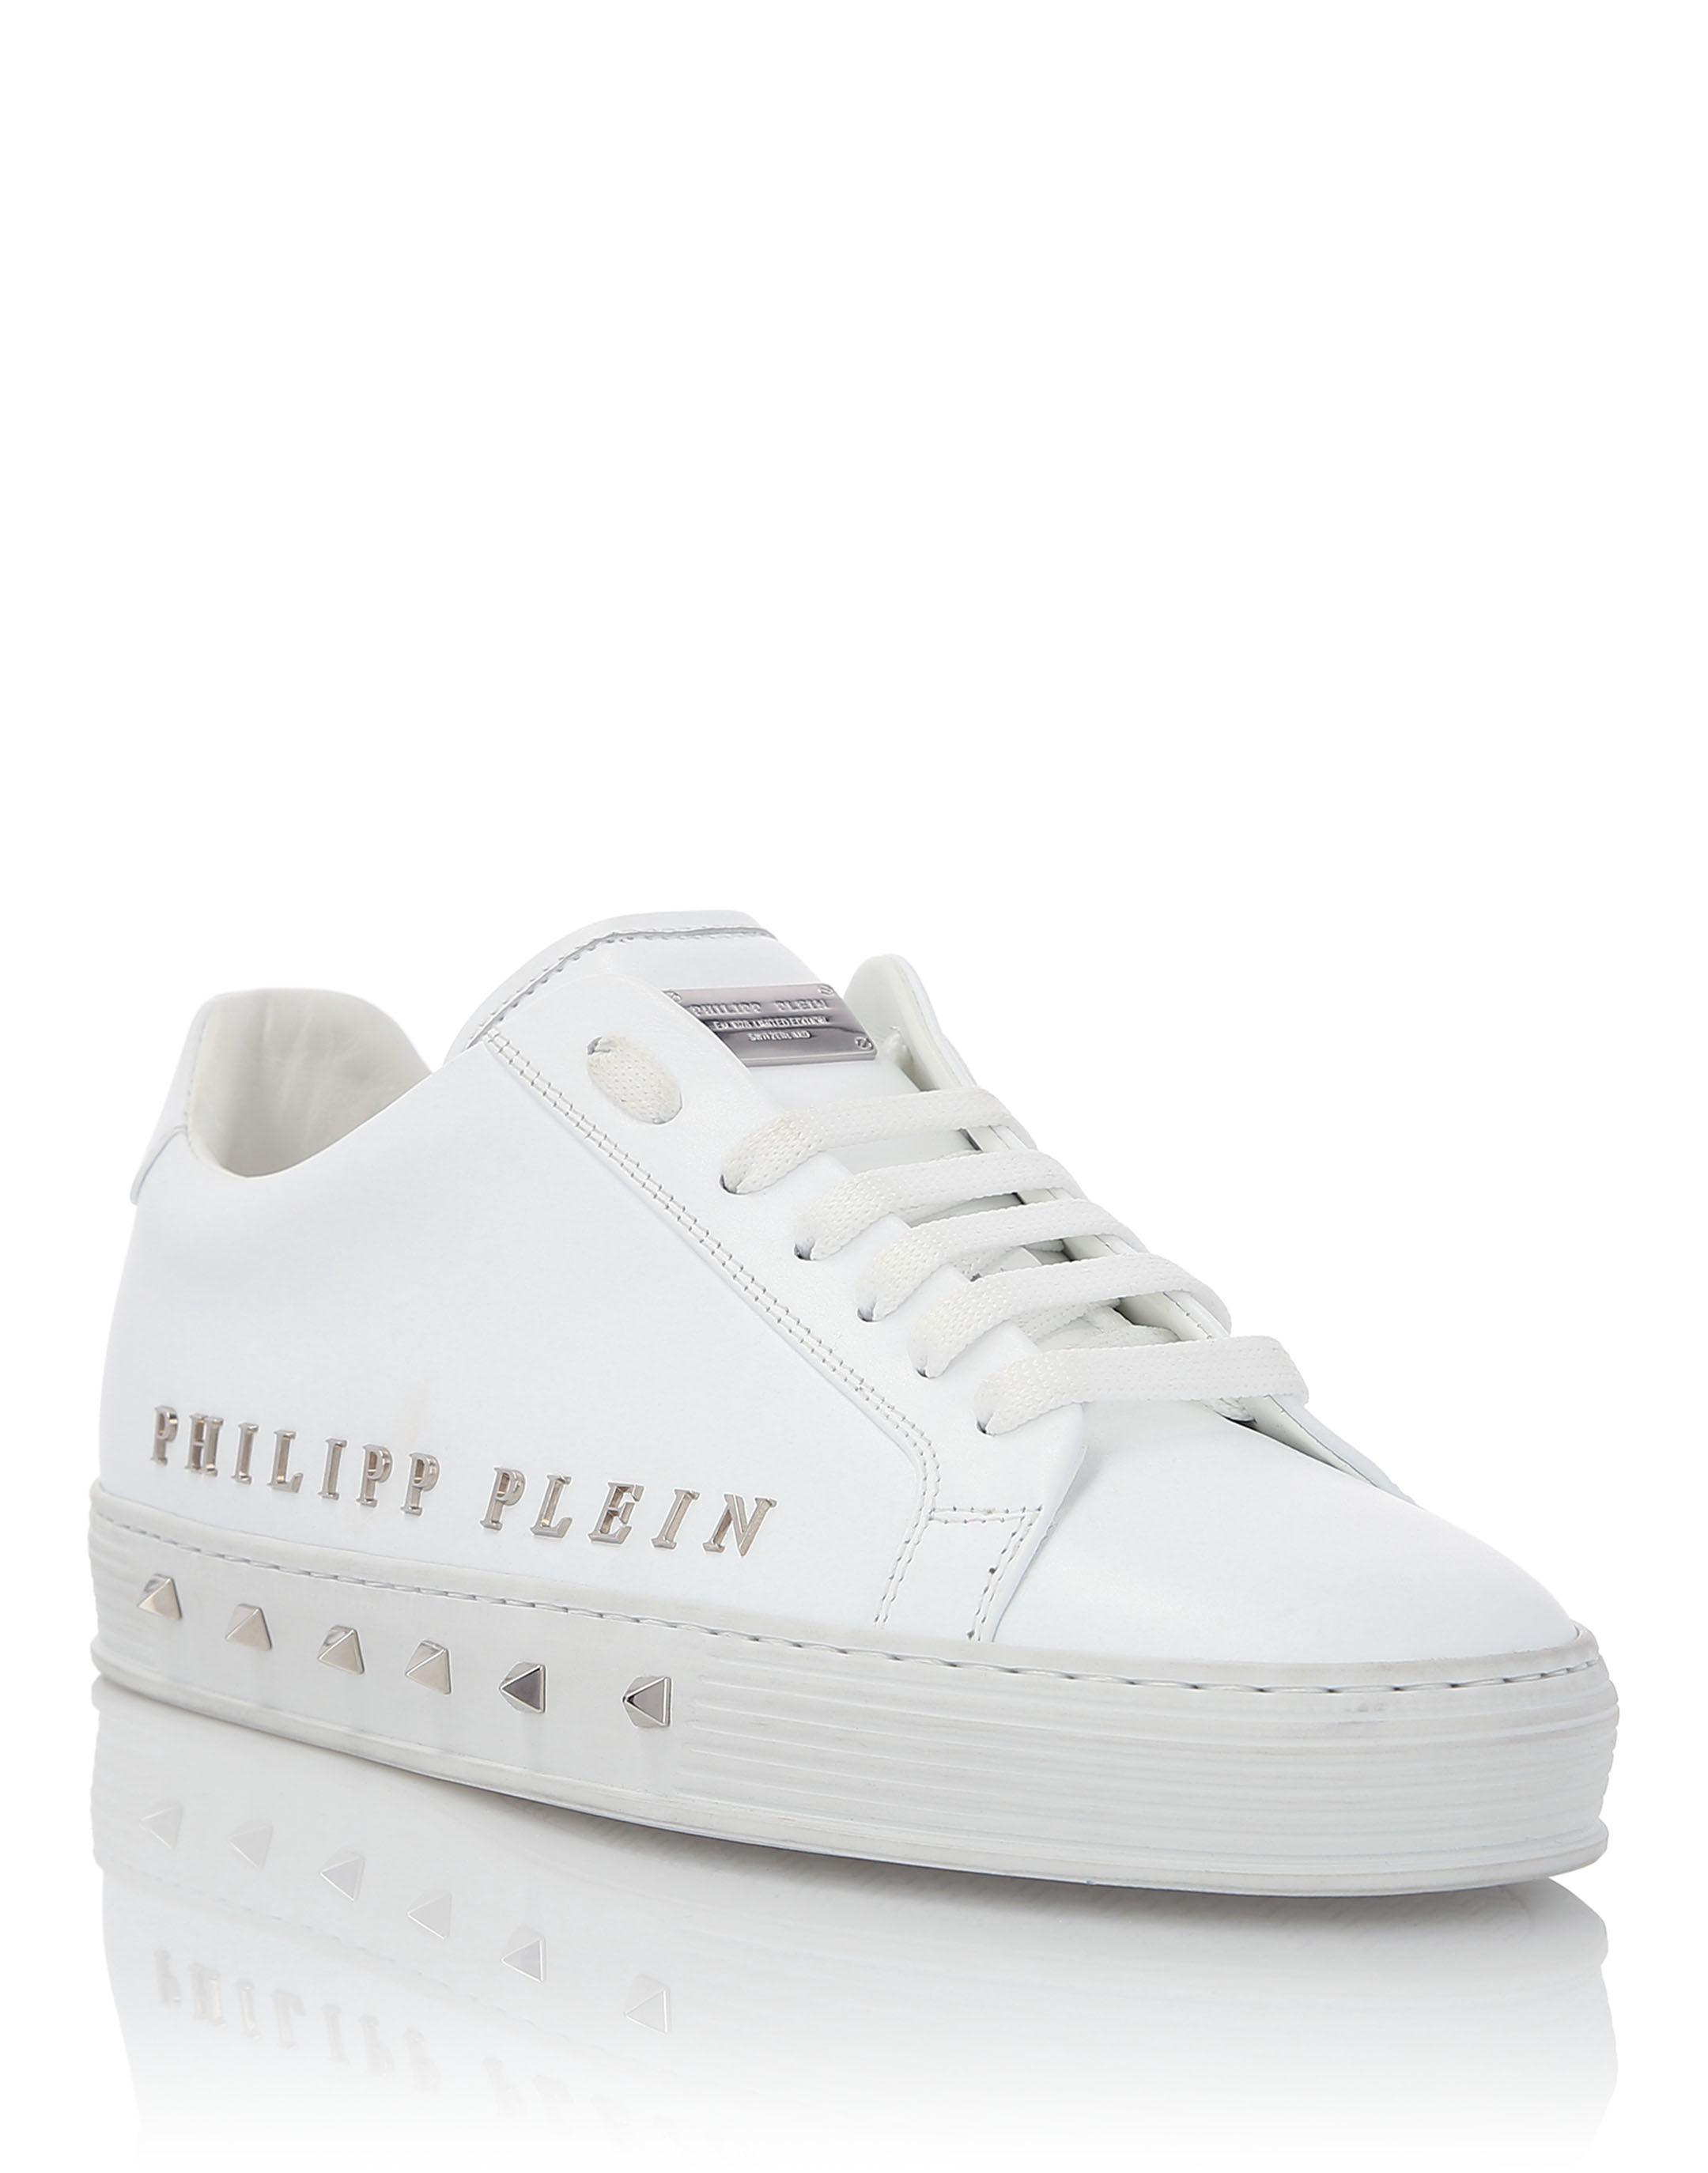 Philipp PleinThe First Time In My Life sneakers zOpe4b98k